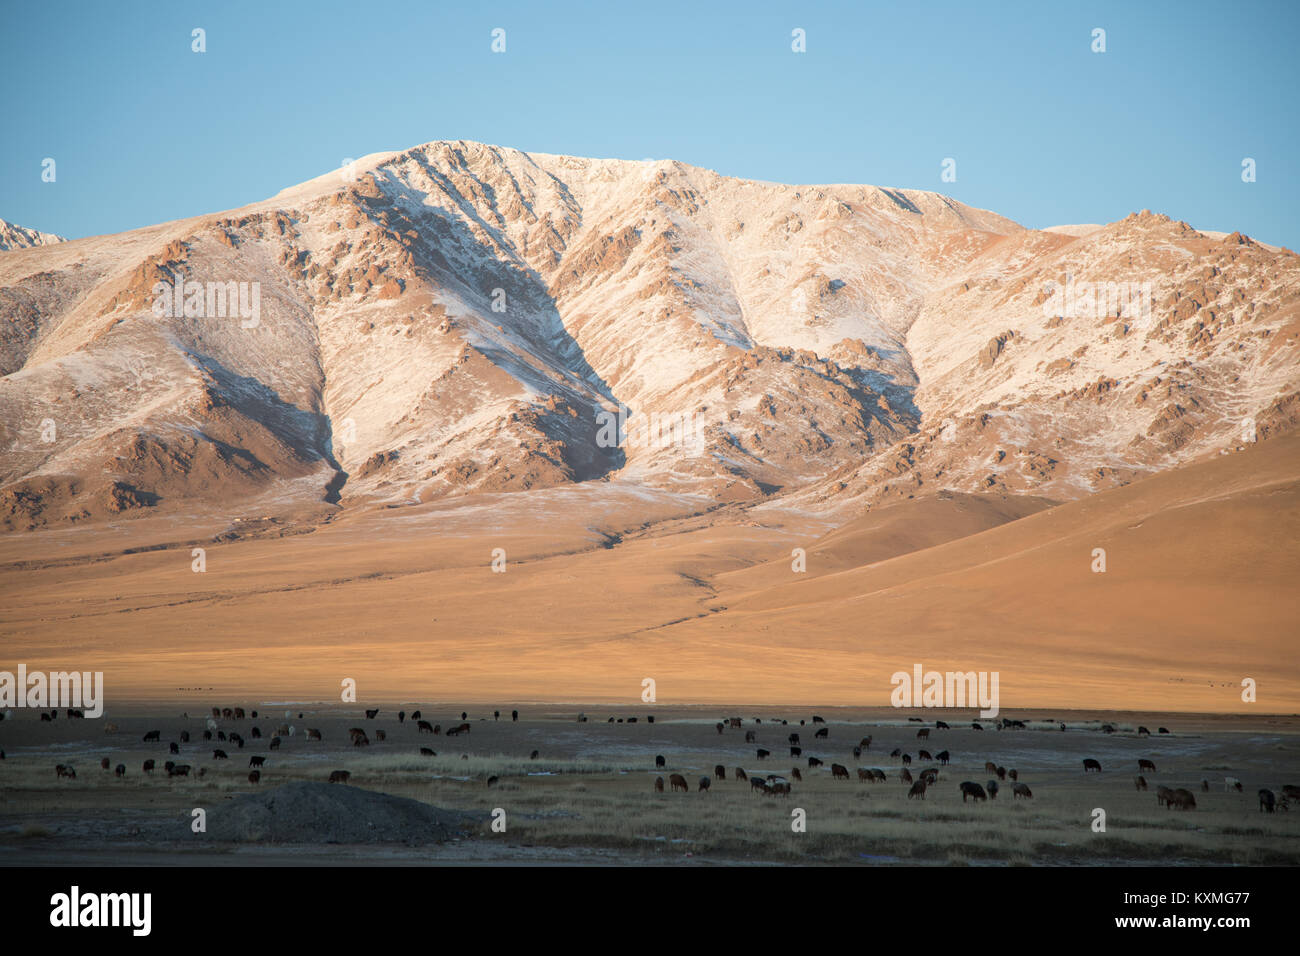 Goat herd herding sunset winter Mongolia steppes grasslands snowy mountains landscape - Stock Image